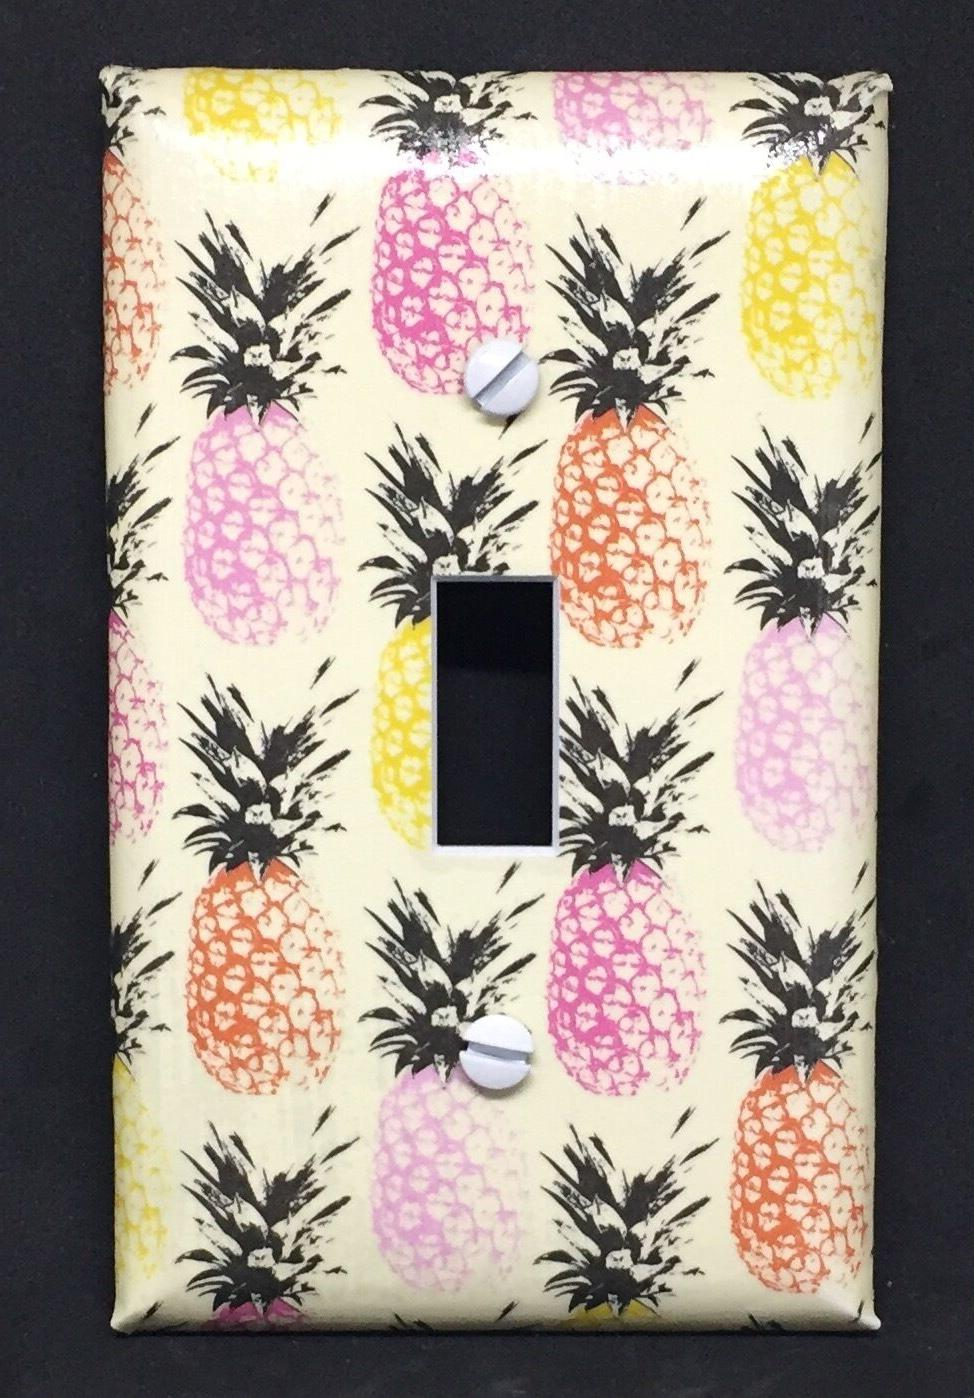 pineapple light switch cover plates kitchen decor